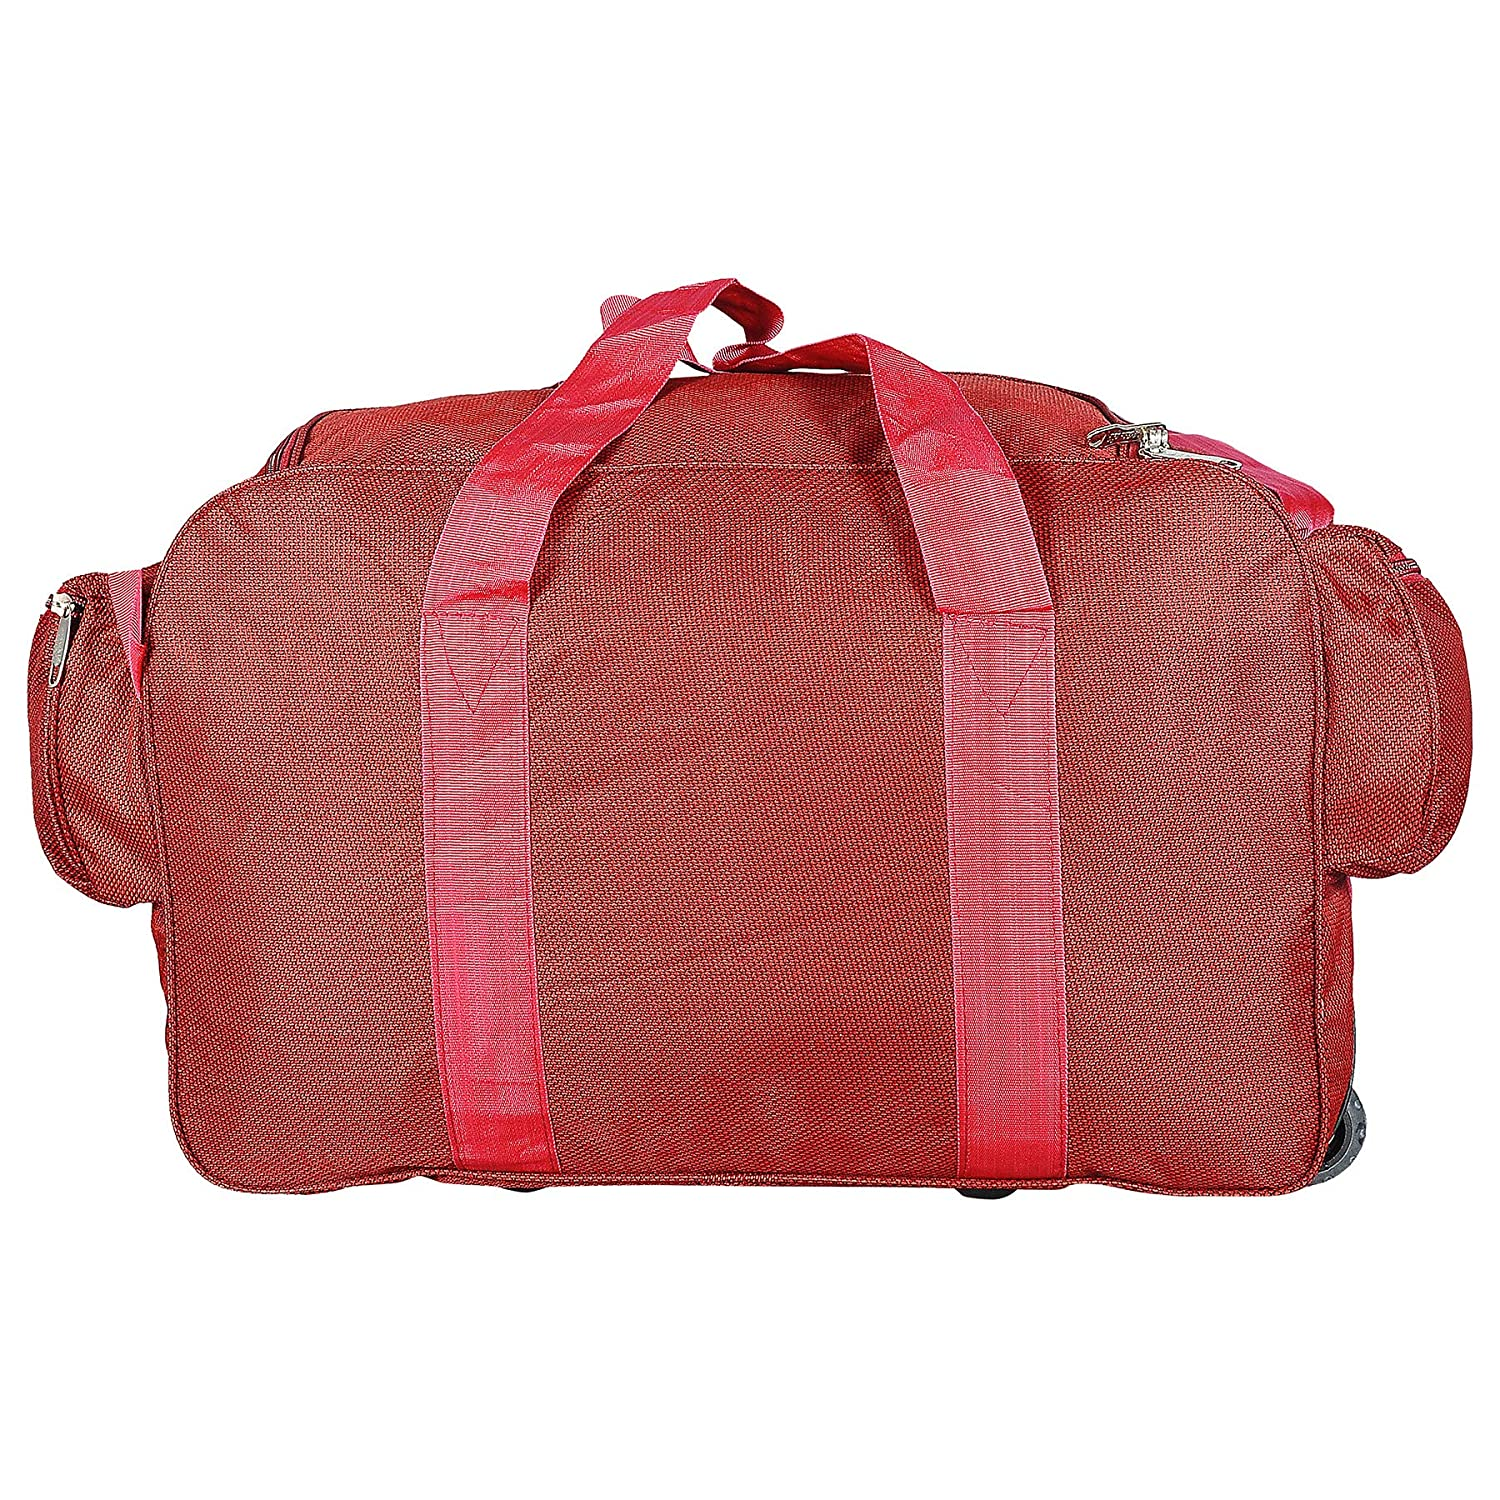 Alfisha Polyester Red Lightweight Waterproof Luggage Travel Duffel Bag   Amazon.in  Bags, Wallets   Luggage 5eec486669